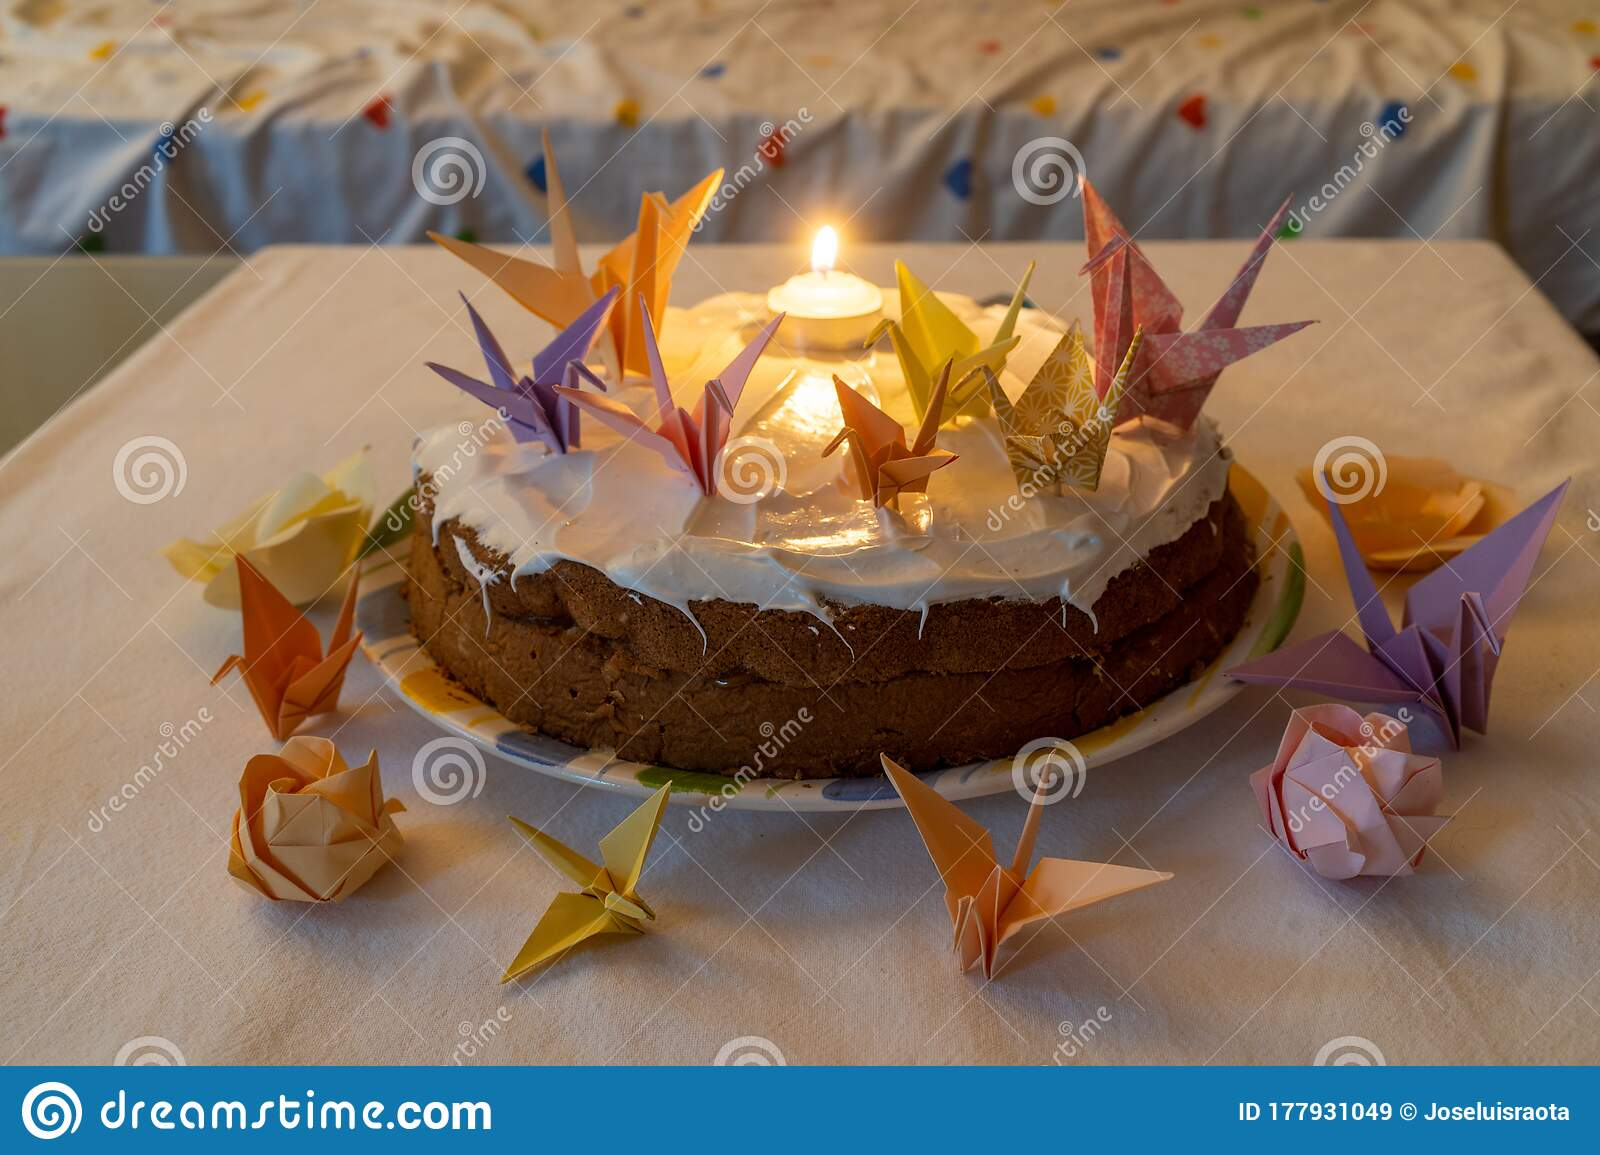 Magnificent Birthday Cake Decorated With Origami In Solitude Without People Funny Birthday Cards Online Alyptdamsfinfo